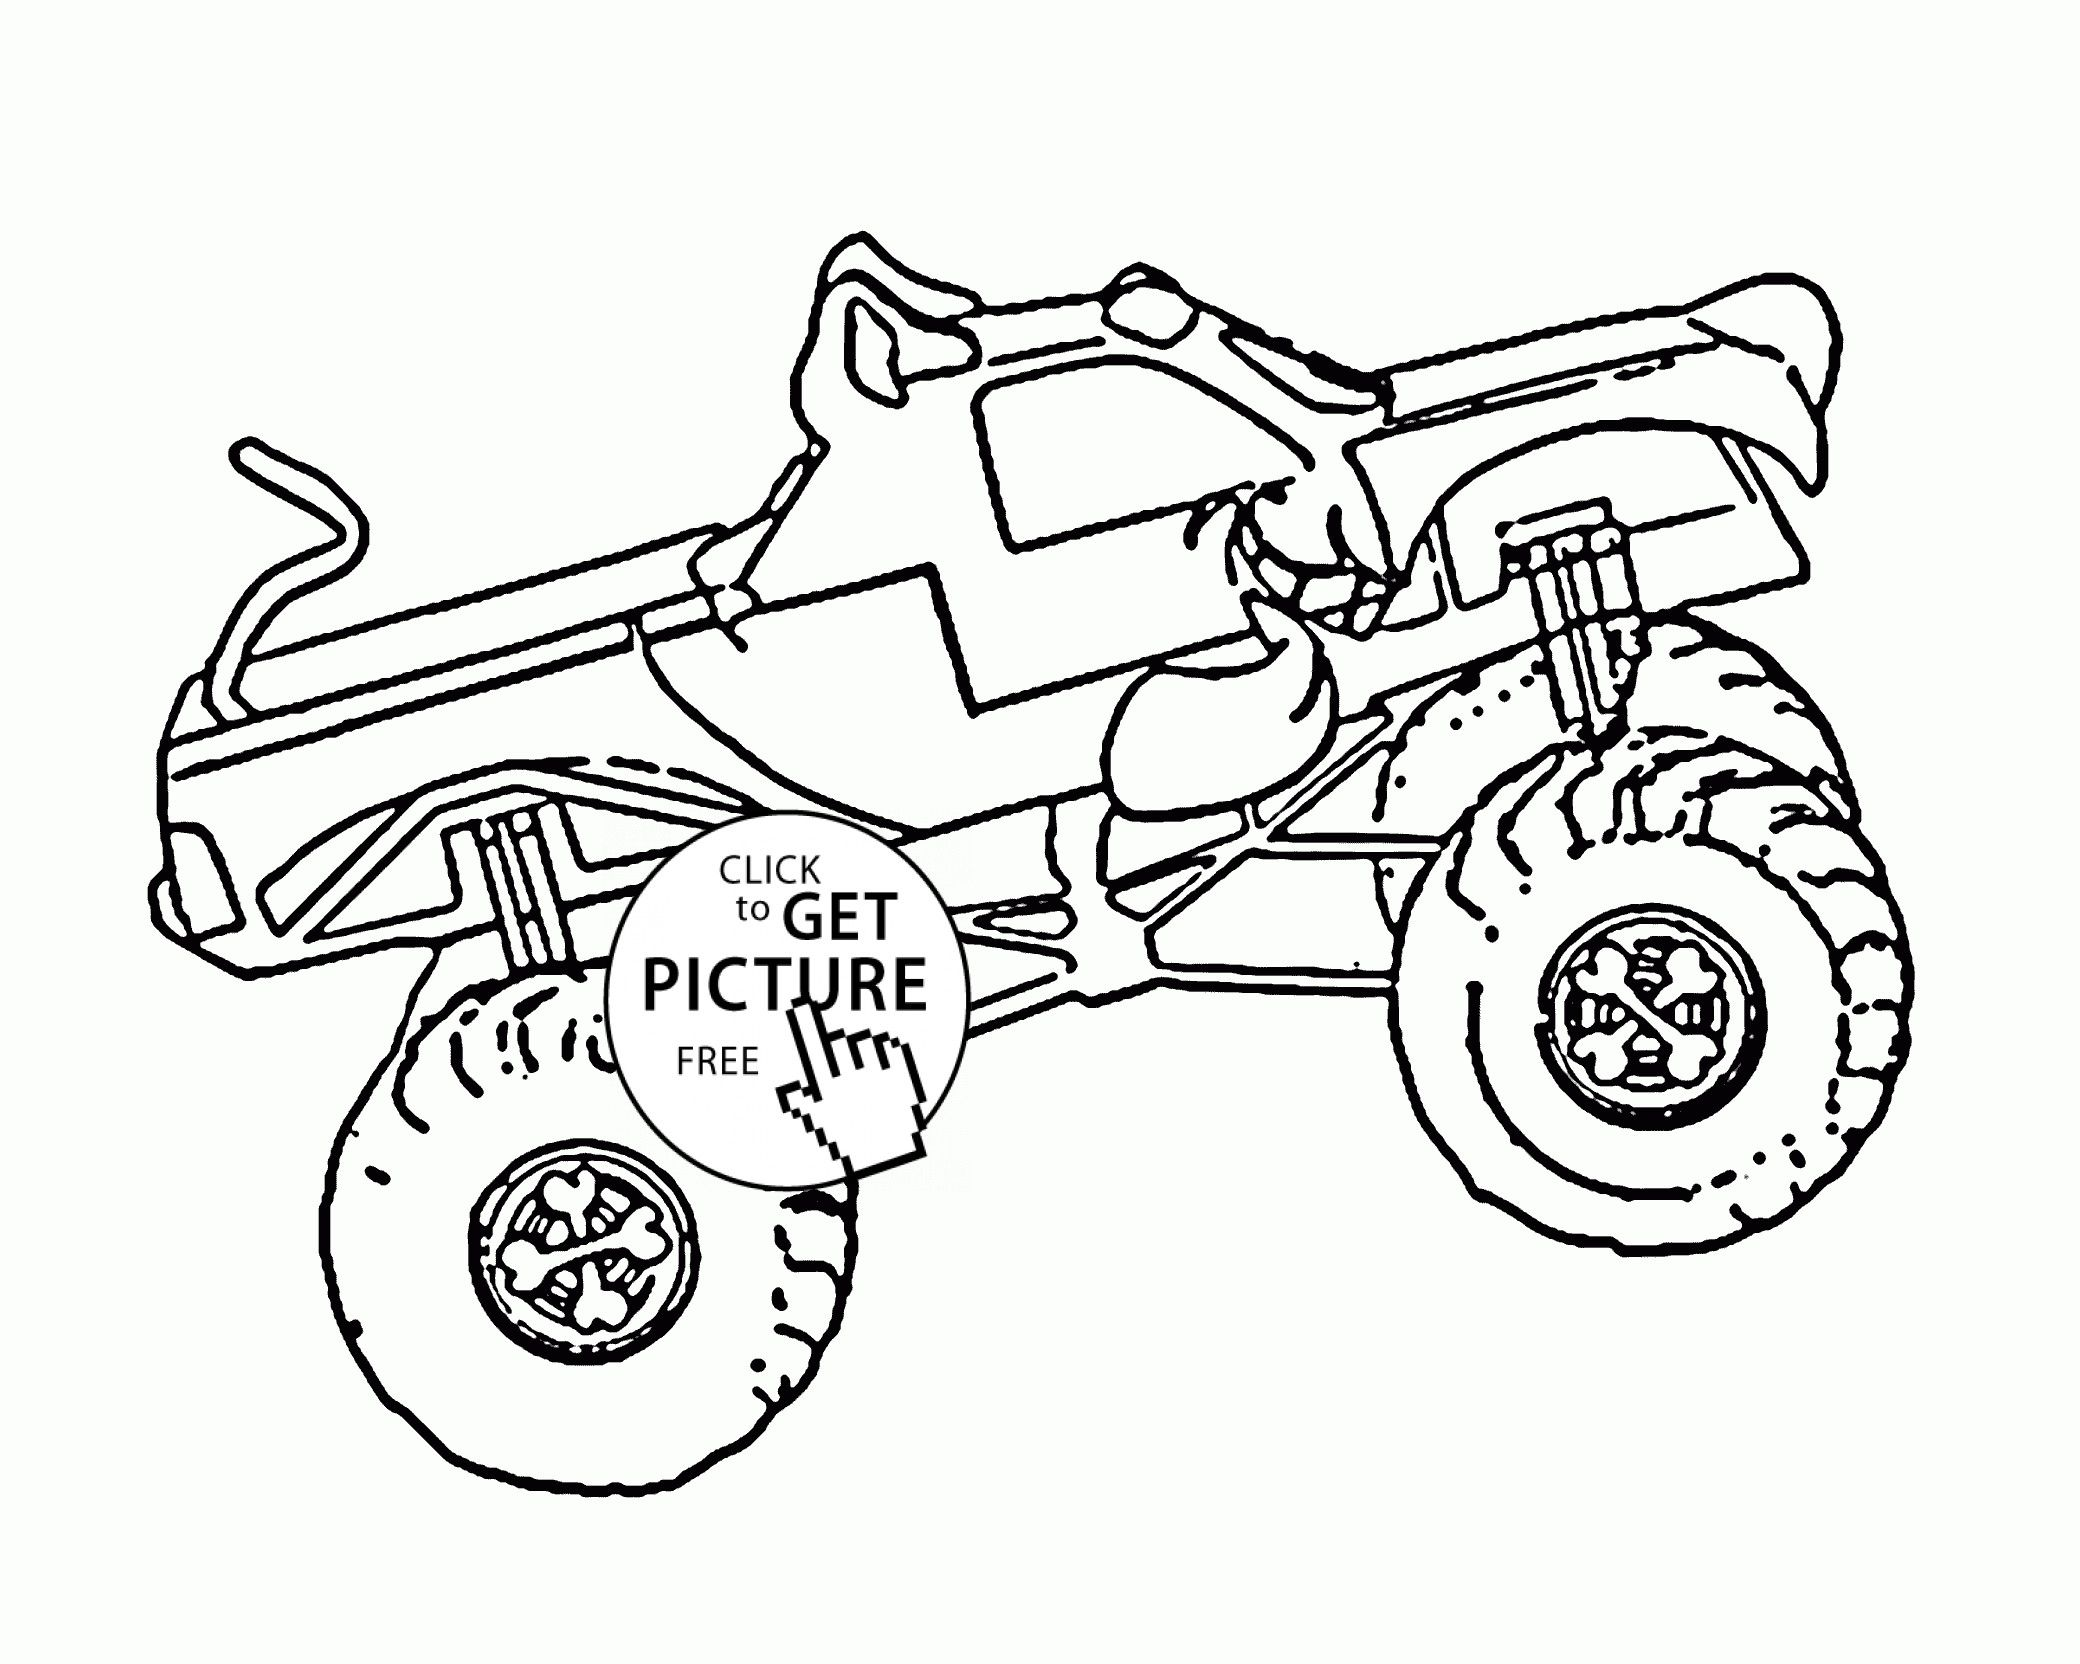 Scooby Doo Coloring Pages Elegant Scooby Doo Monster Truck